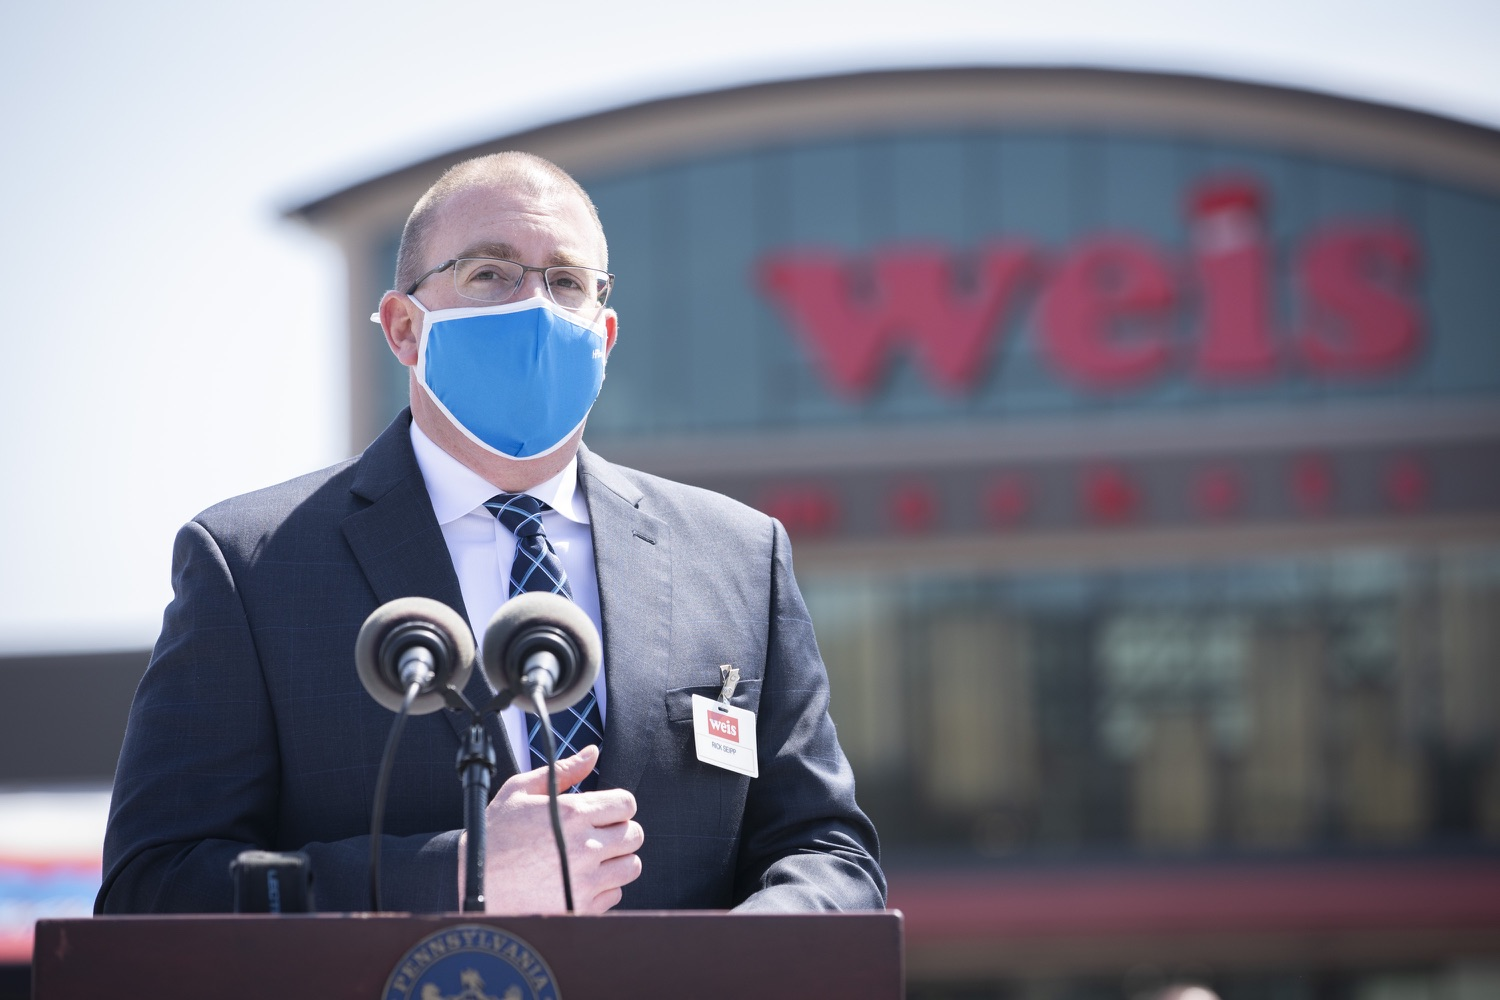 """<a href=""""https://filesource.wostreaming.net/commonwealthofpa/photo/18654_gov_vaccineeligibility_dz_008.jpg"""" target=""""_blank"""">⇣Download Photo<br></a>Rick Seipp, vice president of Weis Pharmacy speaking to the press.  Gov. Tom Wolf visited Weis Markets in Enola, Cumberland County, to recognize the heroic efforts of Pennsylvania's grocery store workers, who are now eligible for the COVID-19 vaccine.  The governor expressed his gratitude to Pennsylvania's 180,000 grocery store workers, who suddenly became frontline workers as the state took critical steps to mitigate the spread of COVID-19. Grocery stores were deemed life-sustaining businesses, and these employees put their lives at risk to ensure their stores remained open to the public. APRIL 06, 2021 - ENOLA, PA.."""